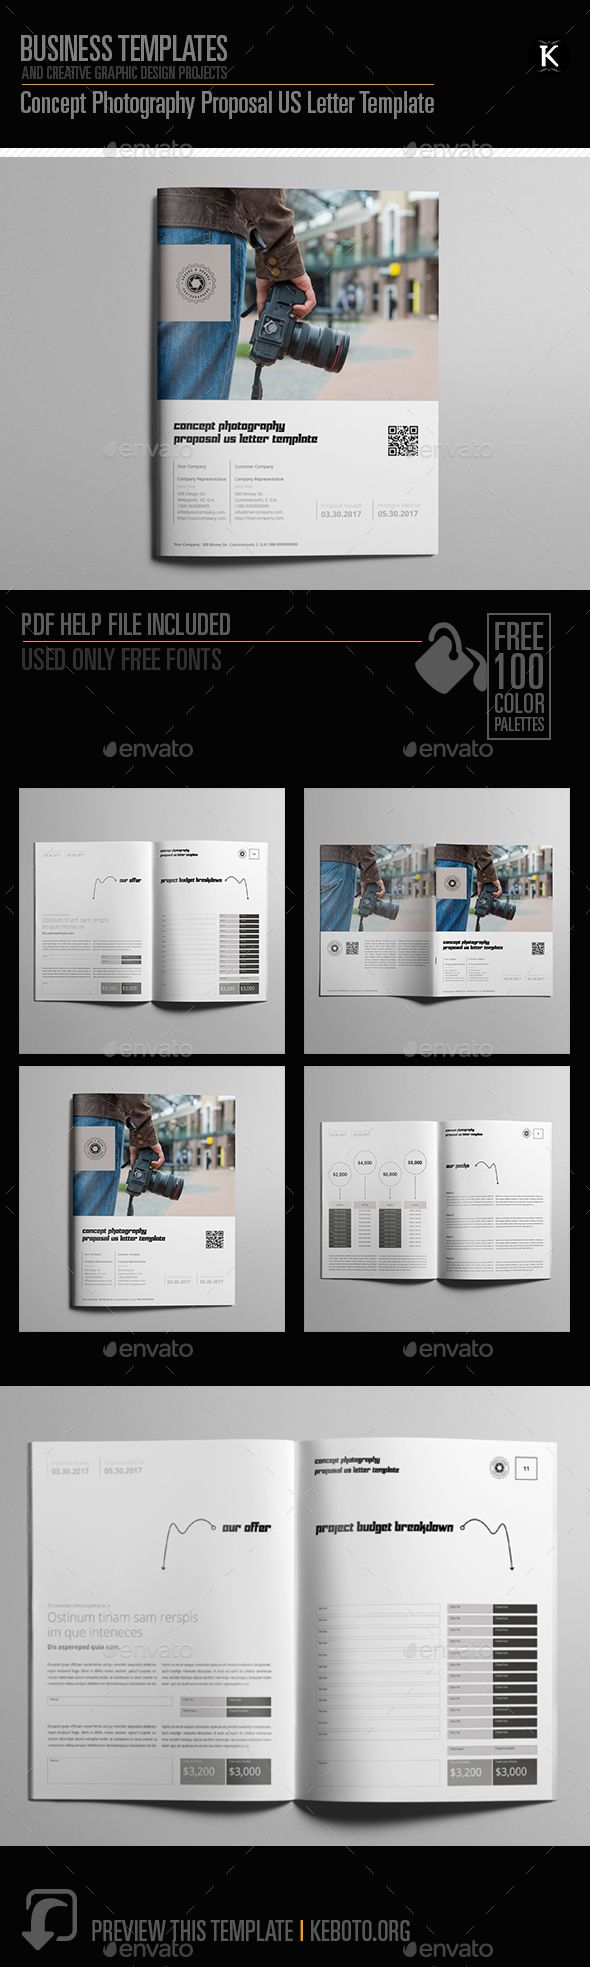 Concept Photography Proposal US Letter Template - #Proposals & Invoices Stationery